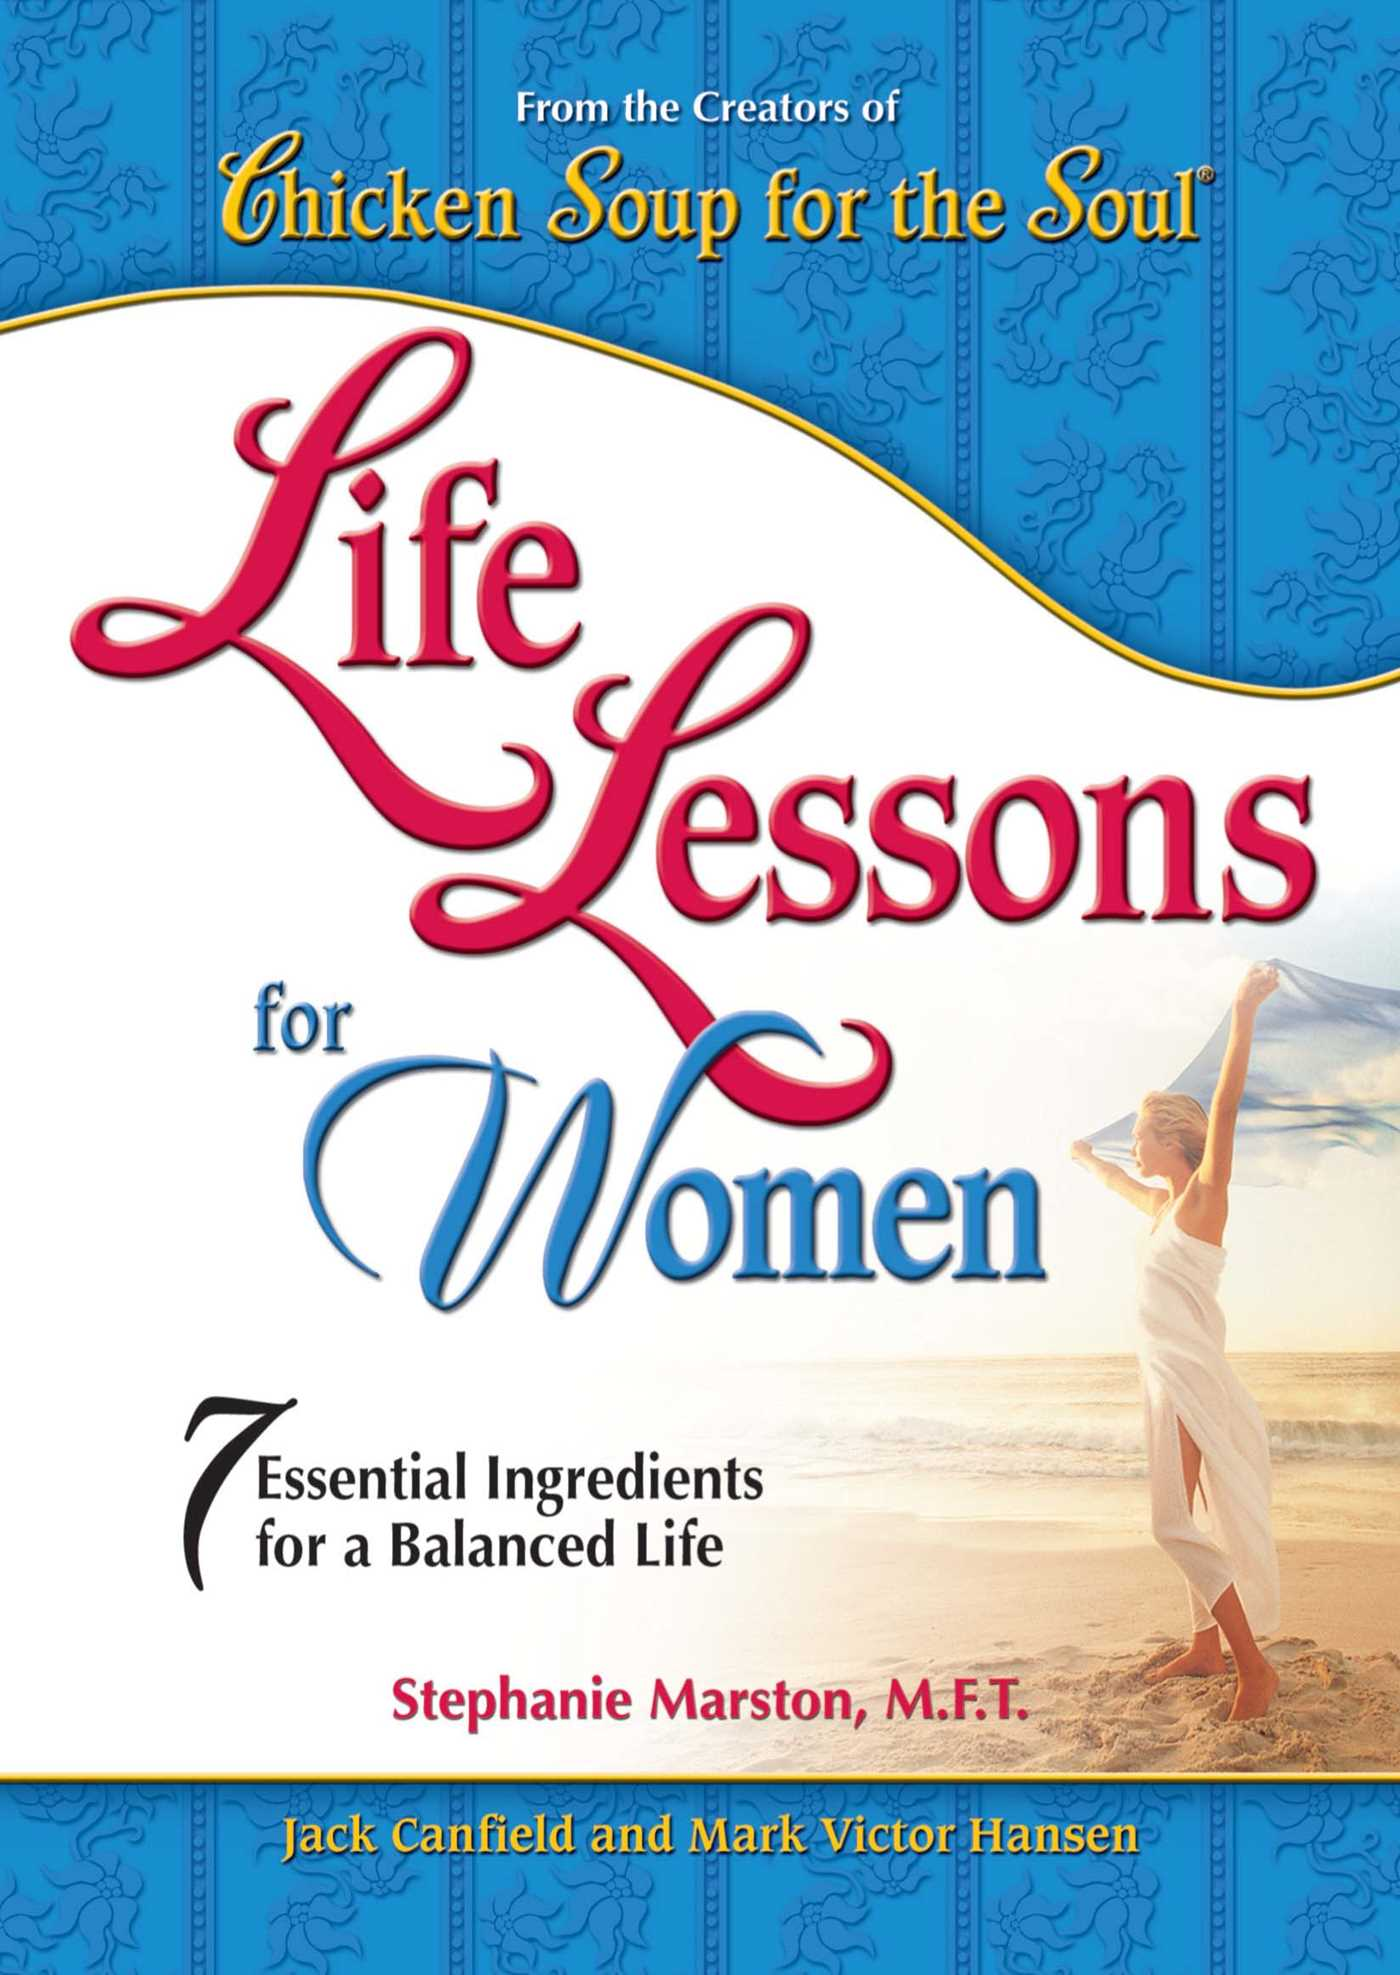 Life-lessons-for-women-9781623610159_hr